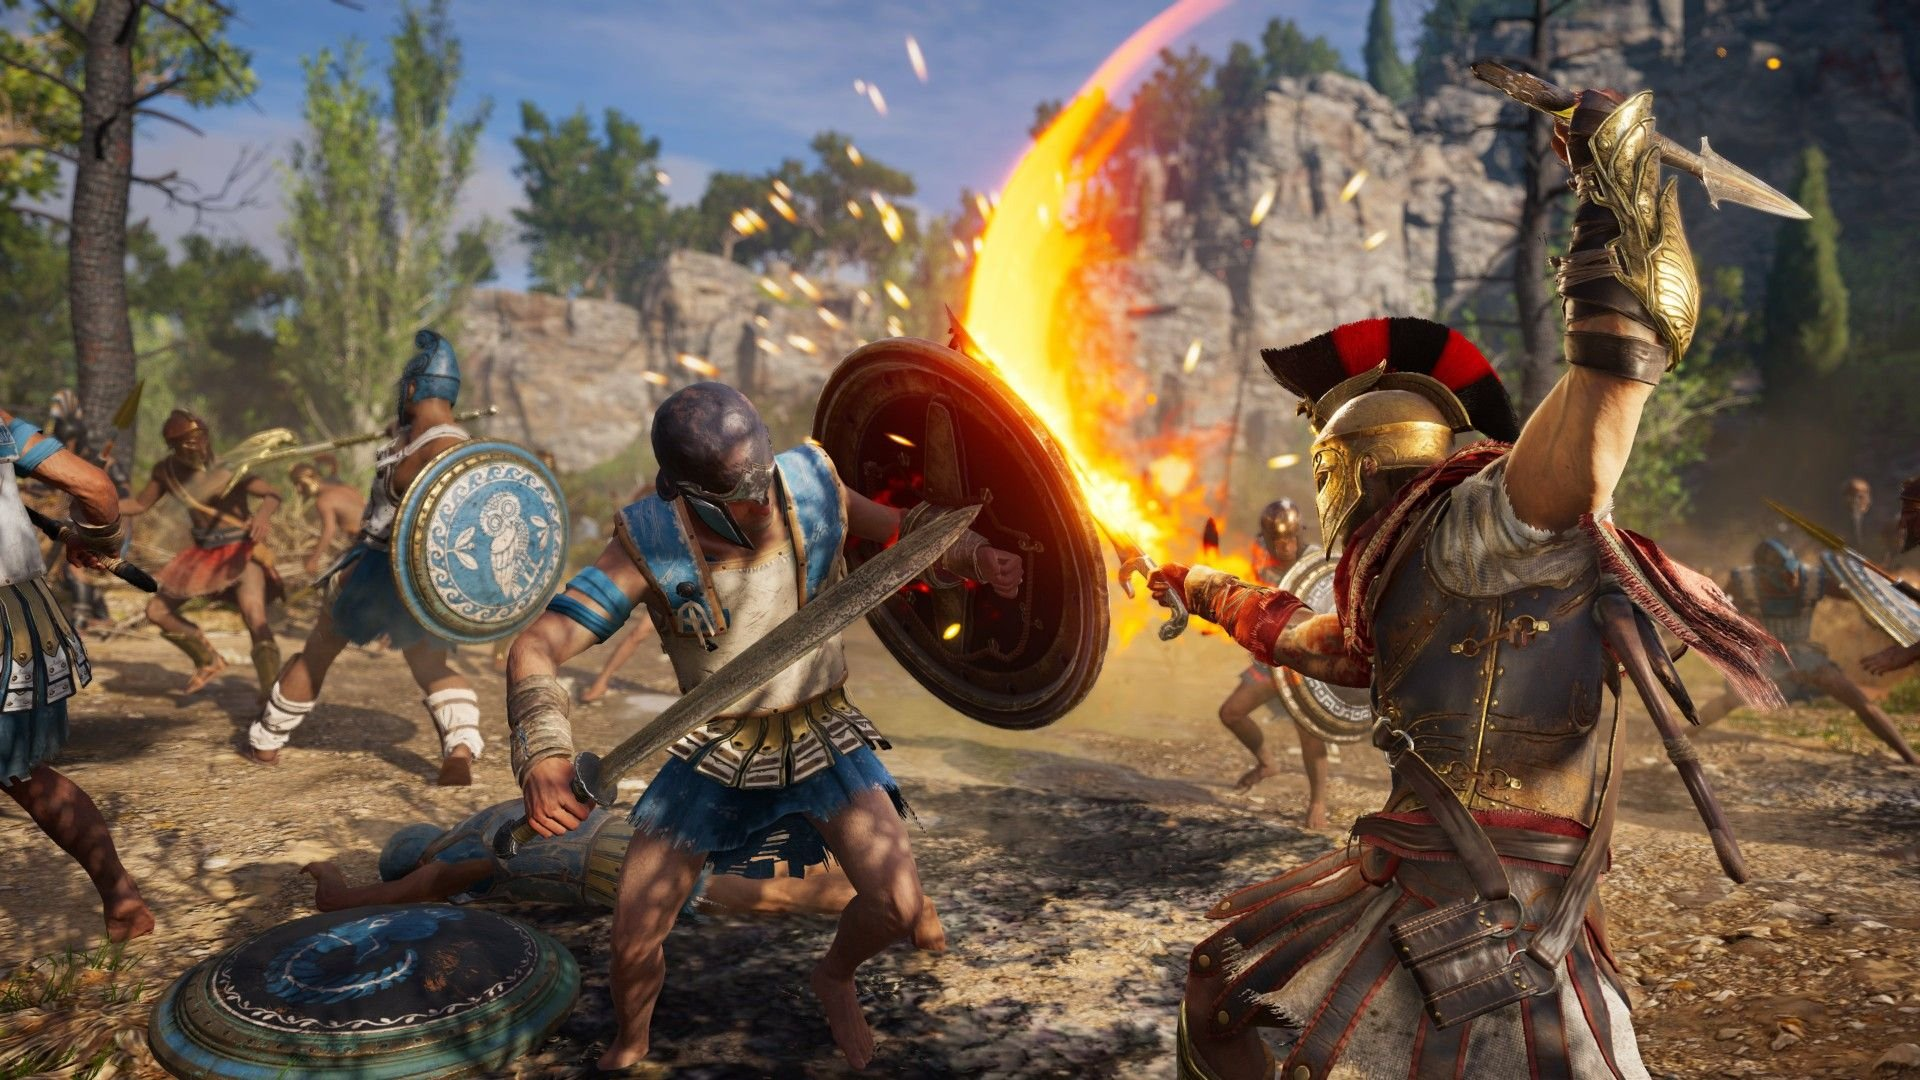 Pc Controls And Key Bindings In Assassin S Creed Odyssey Shacknews